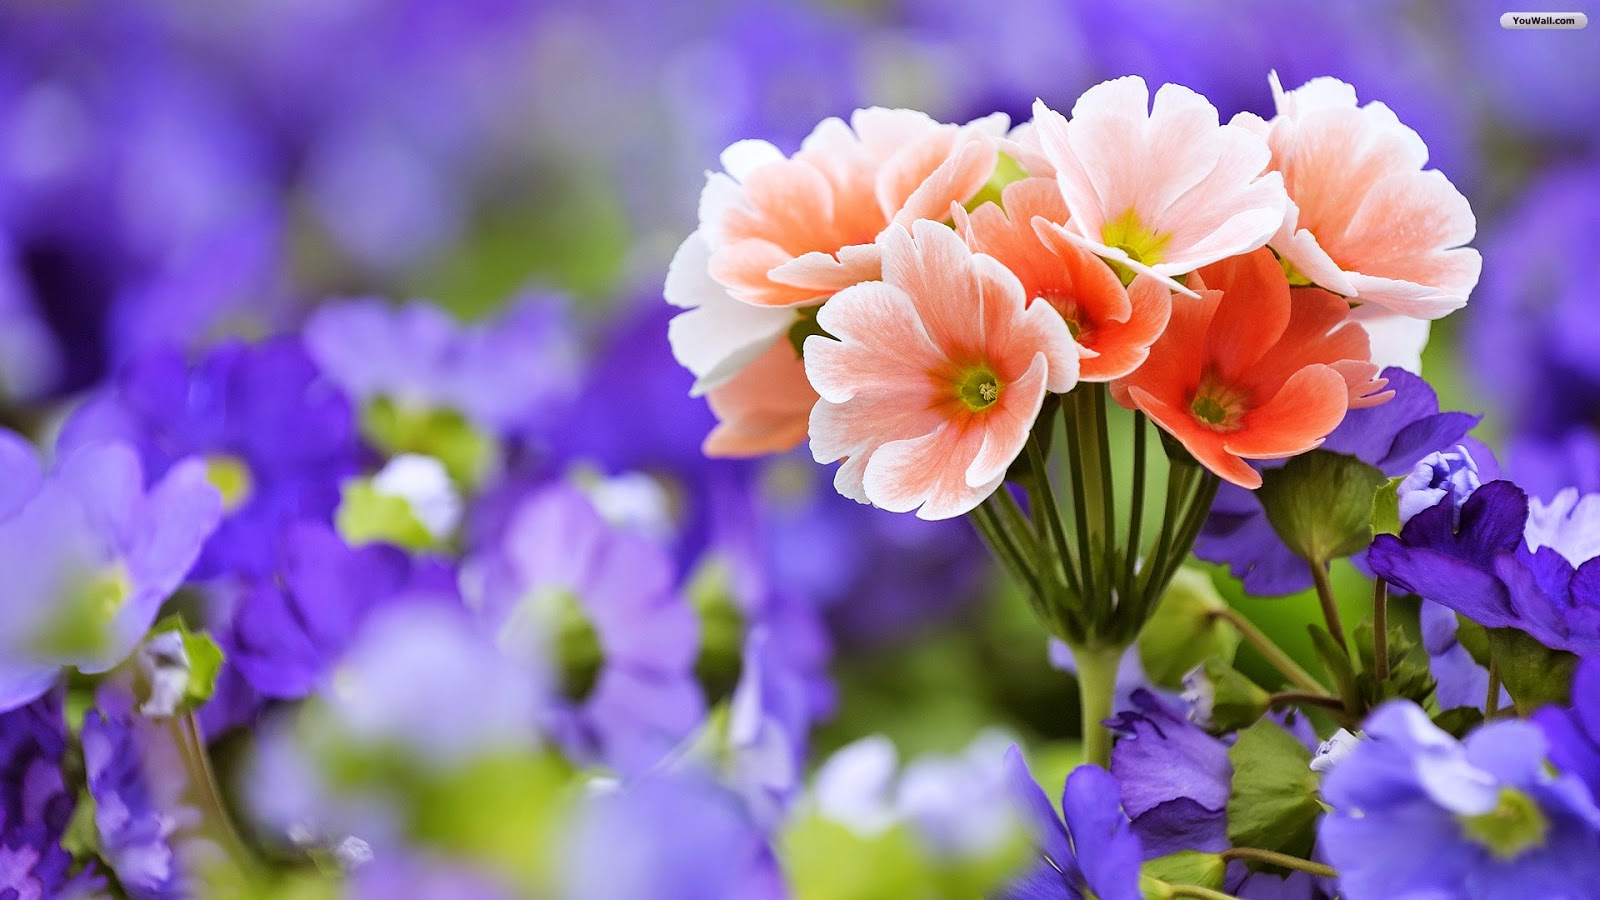 Most beautiful flowers in the world flower with styles beautiful flowers izmirmasajfo